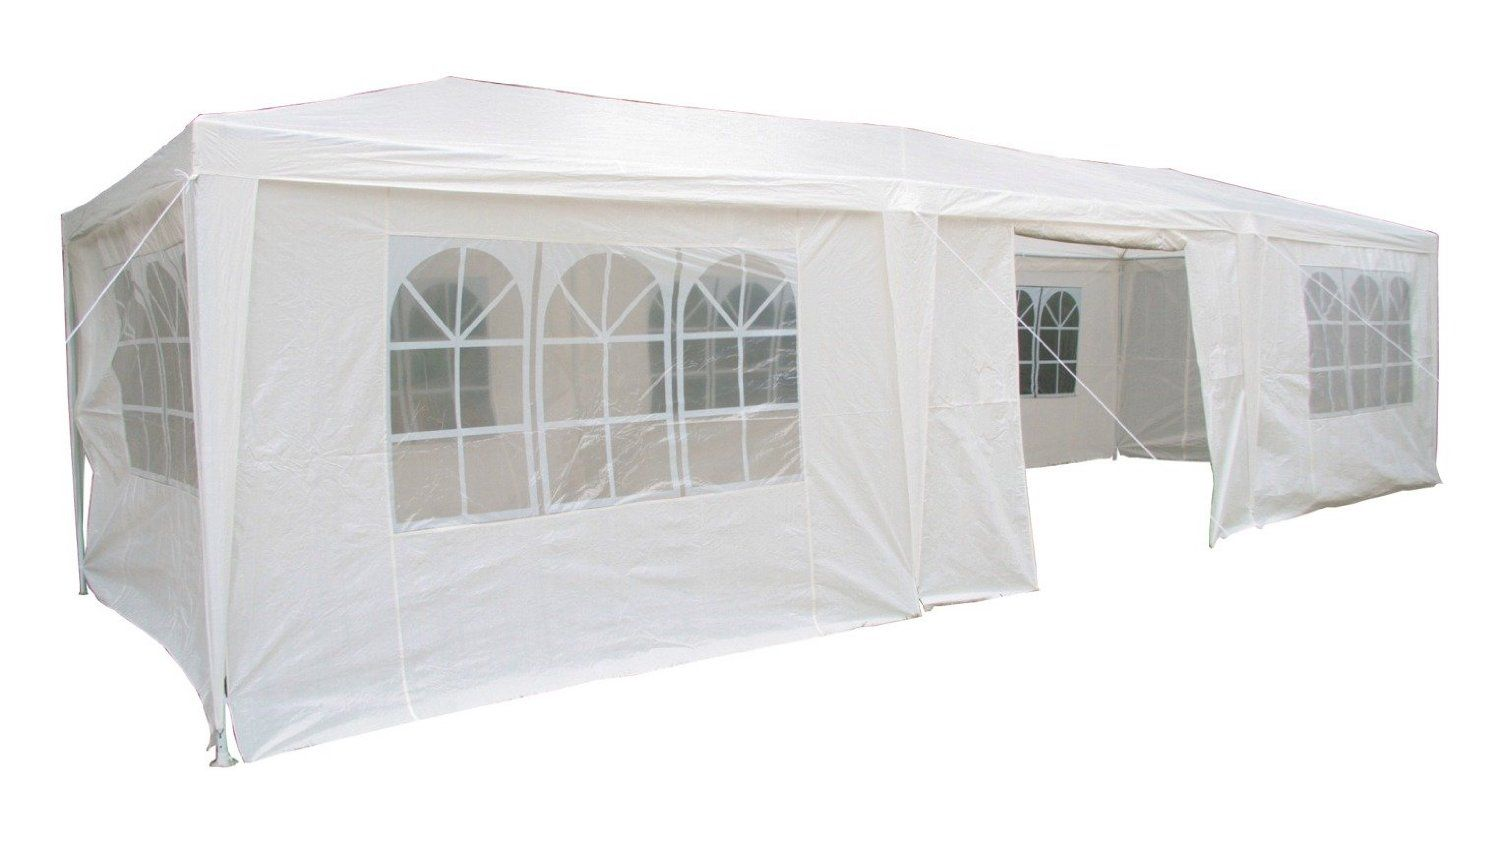 Airwave 3 x 9m Party Tent Gazebo Marquee with 3 x Unique WindBars and Side Panels  sc 1 st  Pinterest & Airwave 3 x 9m Party Tent Gazebo Marquee with 3 x Unique WindBars ...